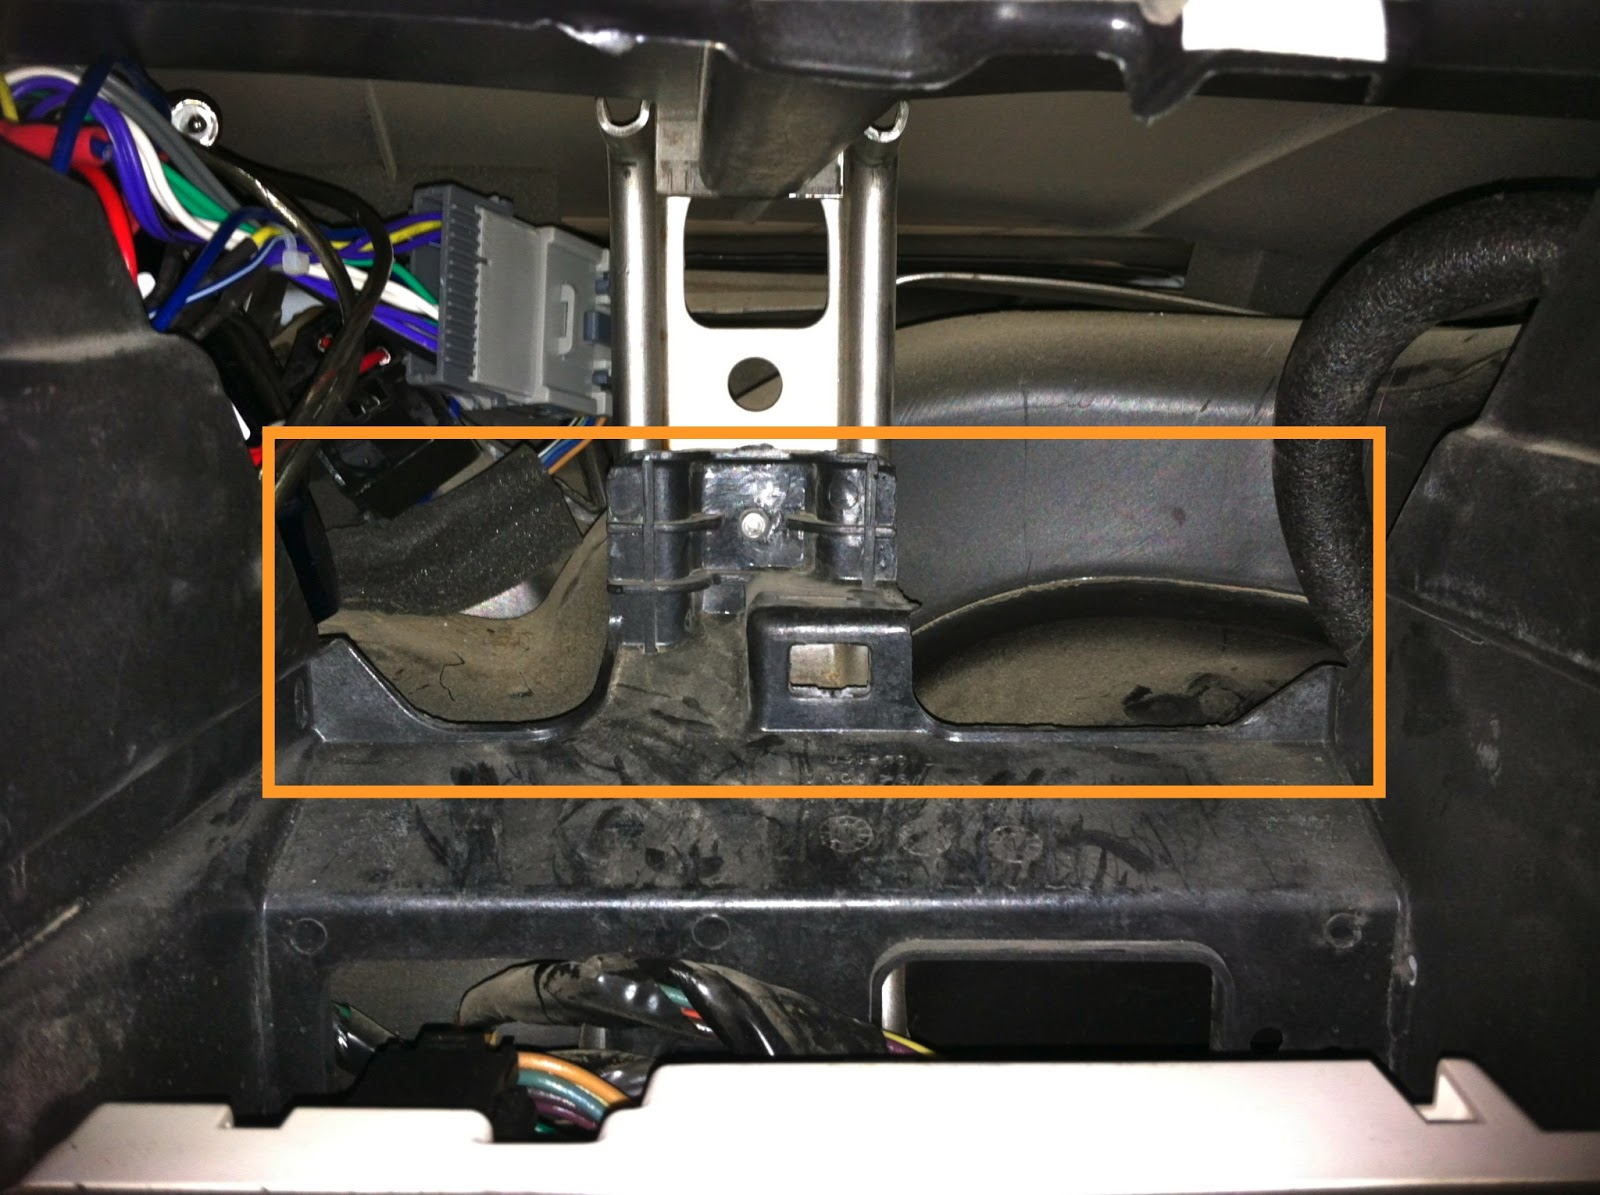 radio wiring diagram for 2004 chevy silverado with bose system nissan patrol alternator car stereo speaker locations | get free image about